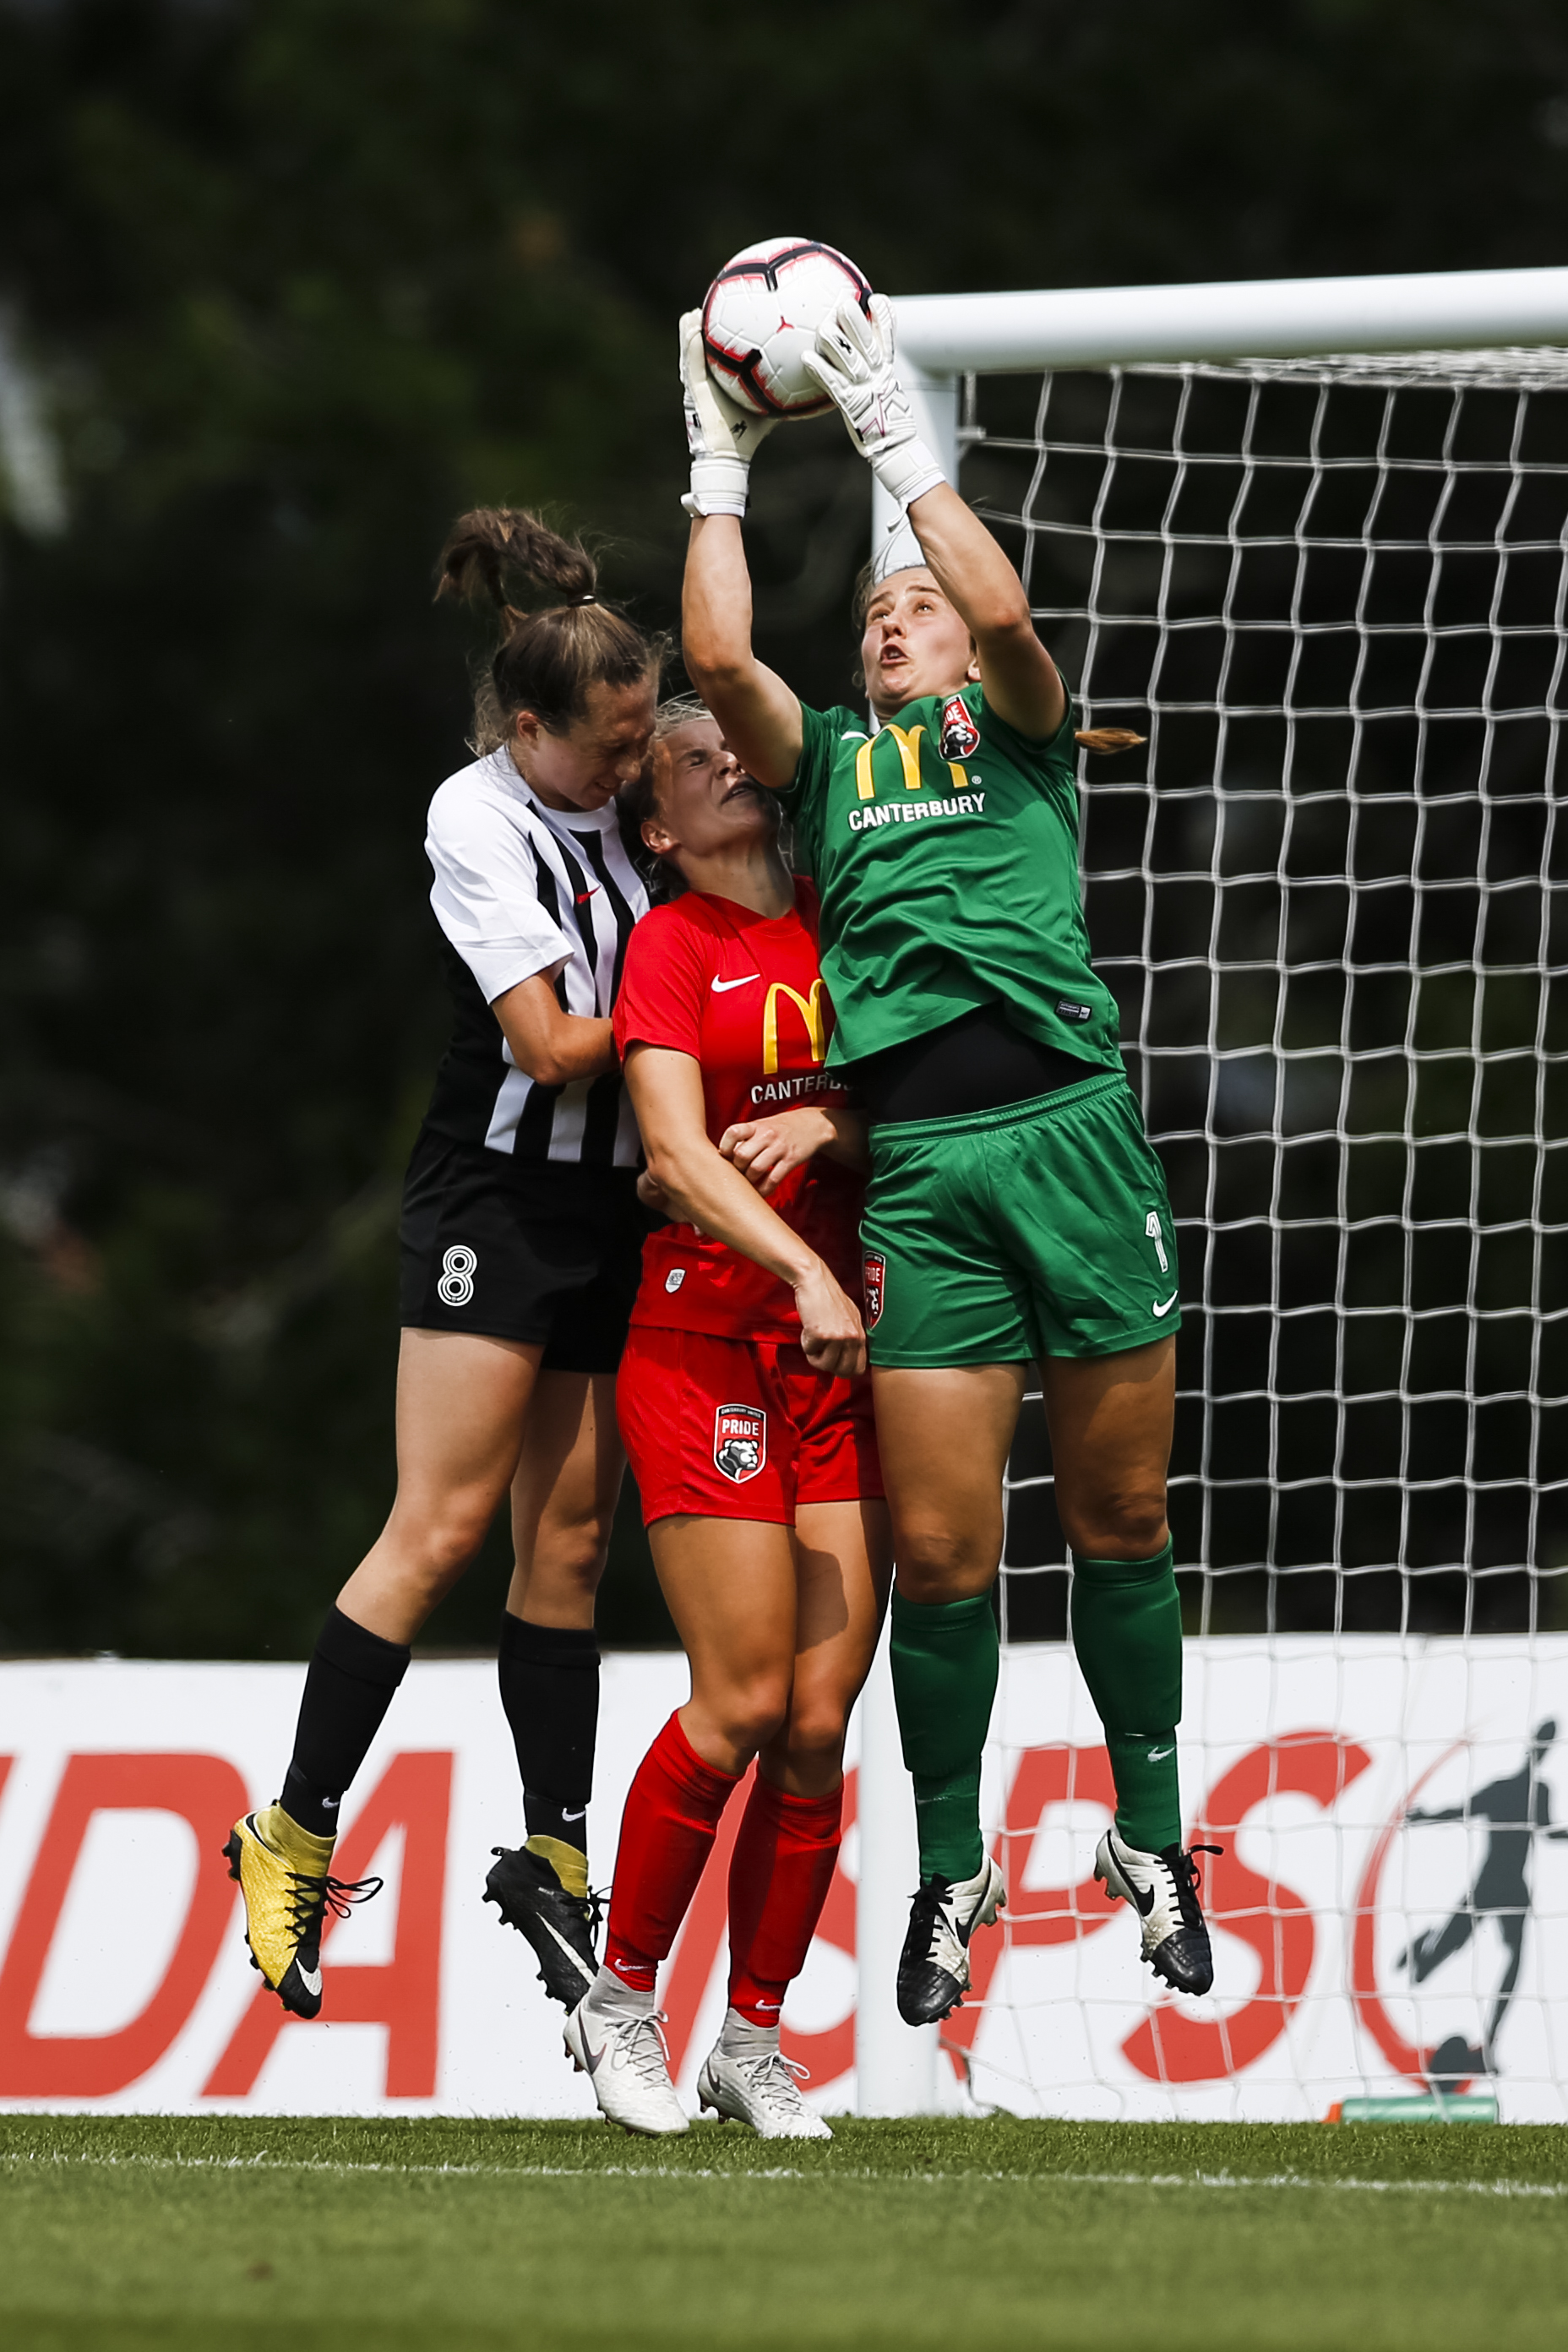 Victoria Esson of Canterbury makes a save against Northern at the National Women's League Final. 16 December 2018. Trusts Arena, Auckland, New Zealand. Copyright photo: Alisha Lovrich / www.photosport.nz